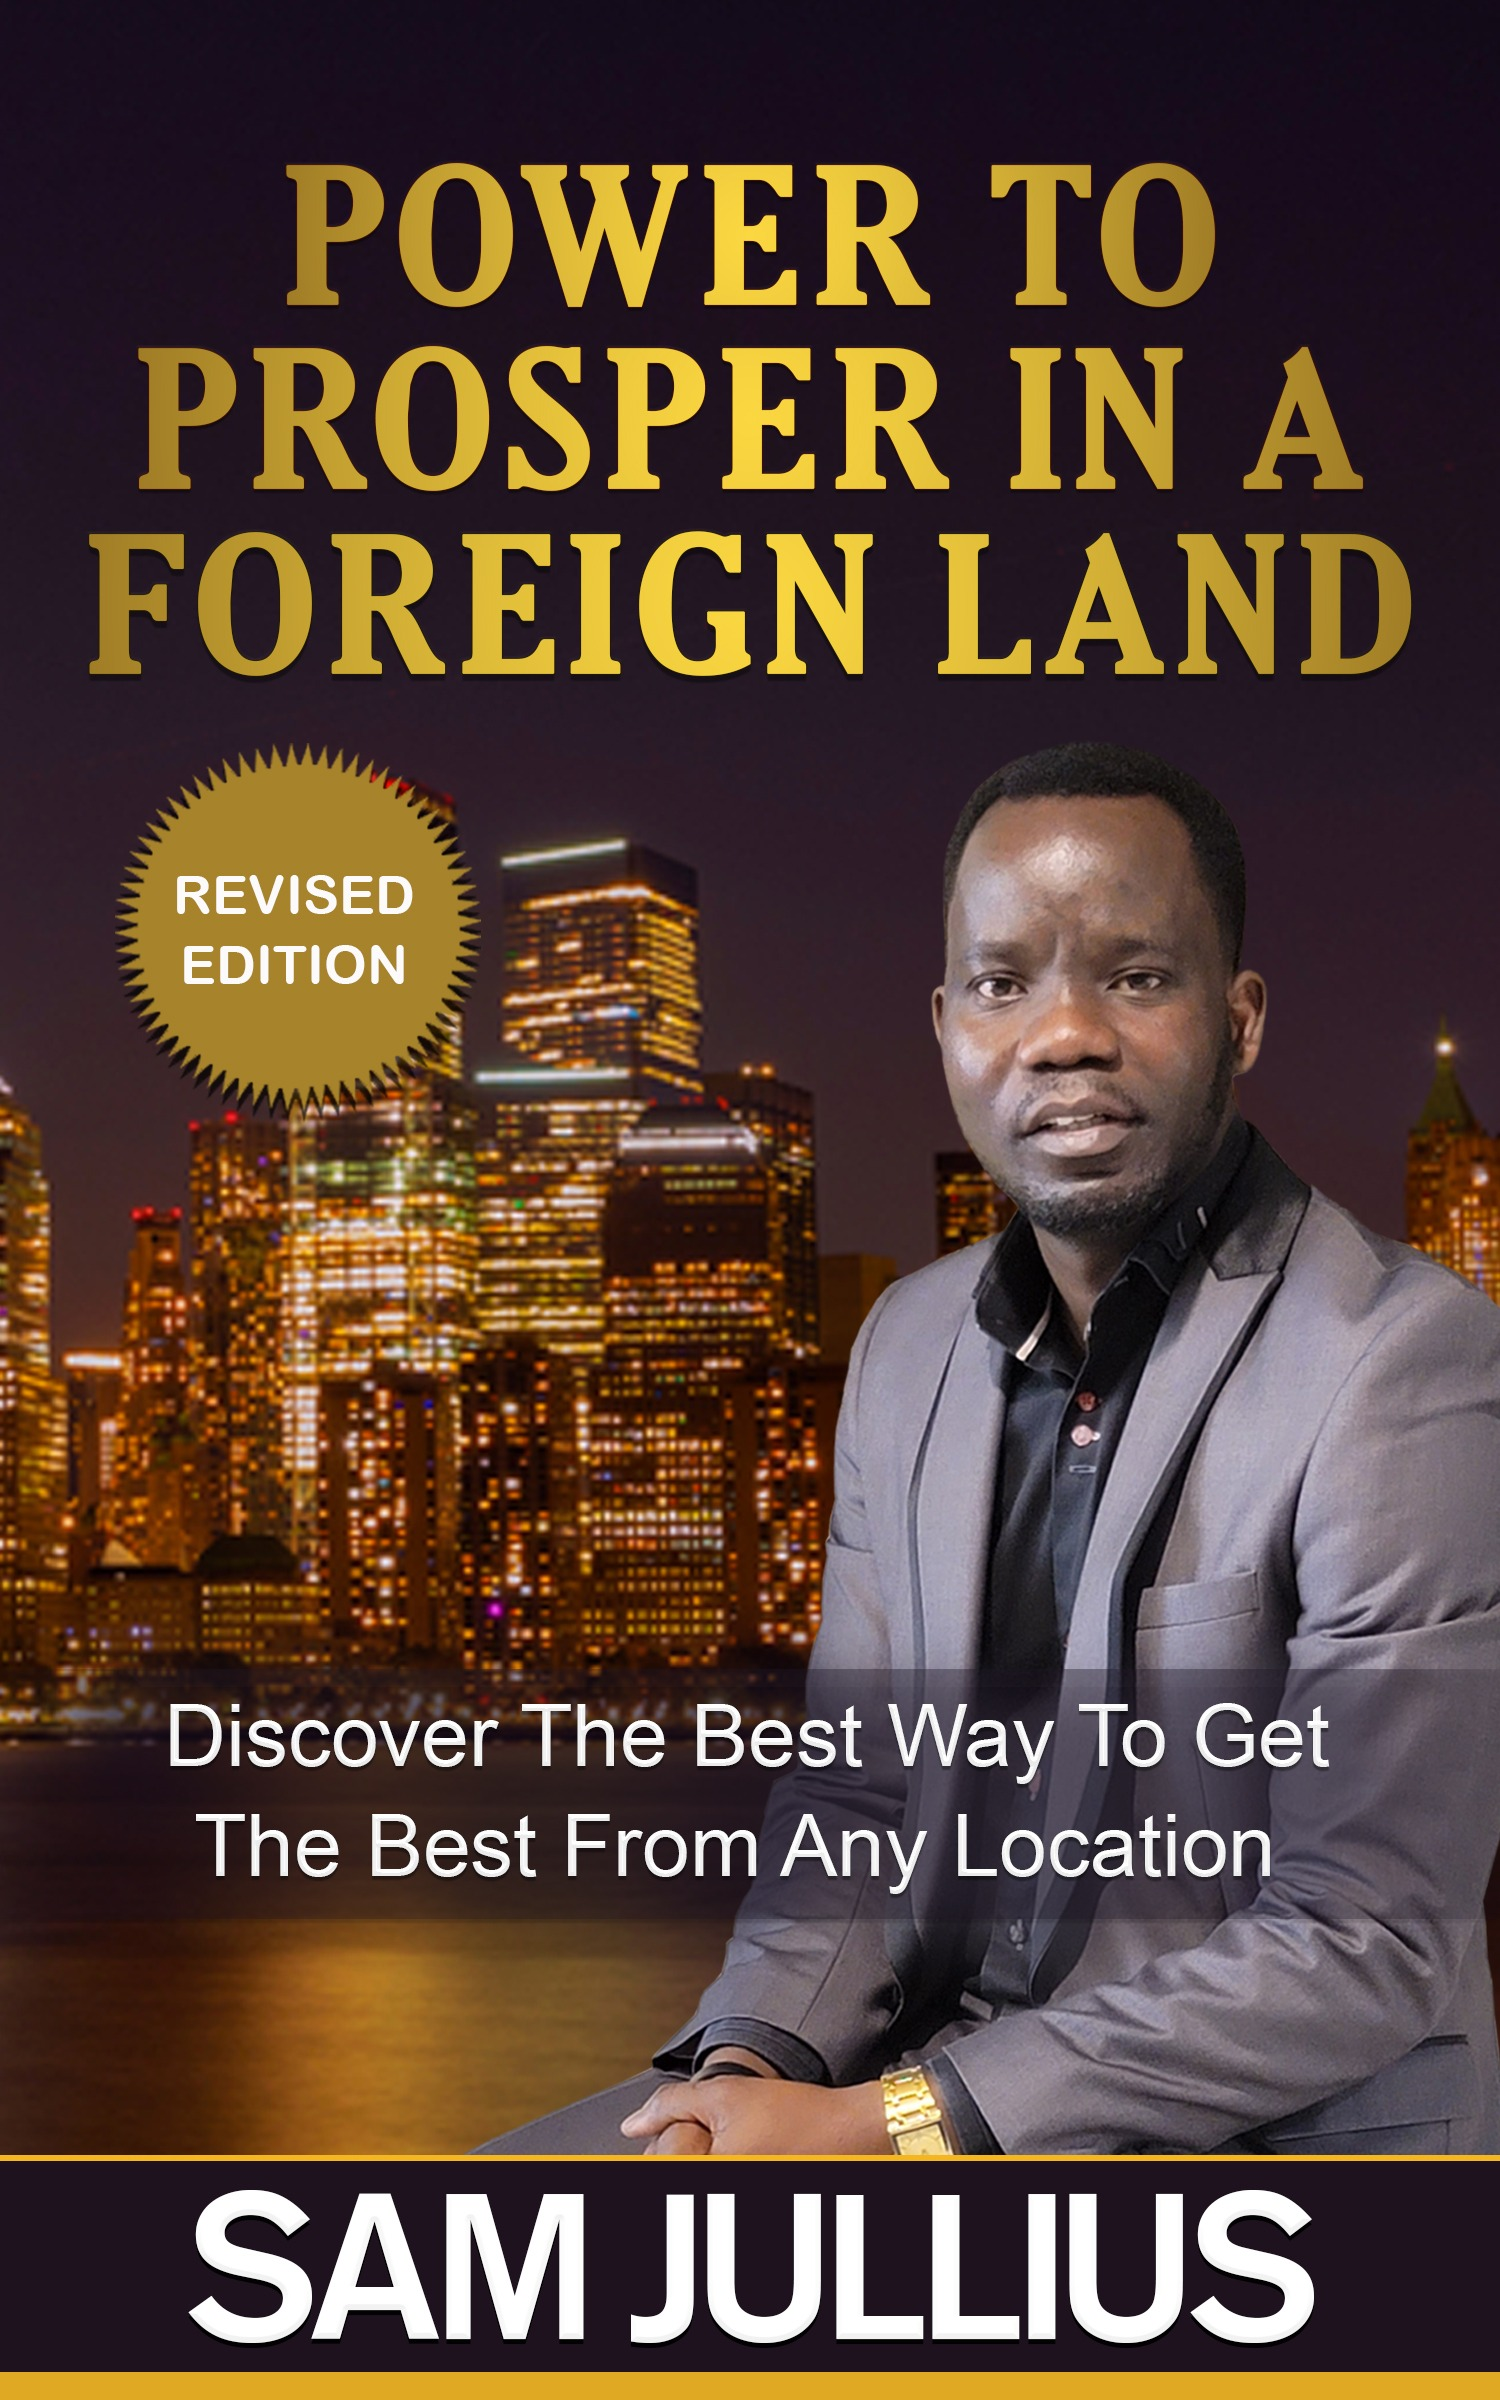 Power To Prosper In A Foreign Land